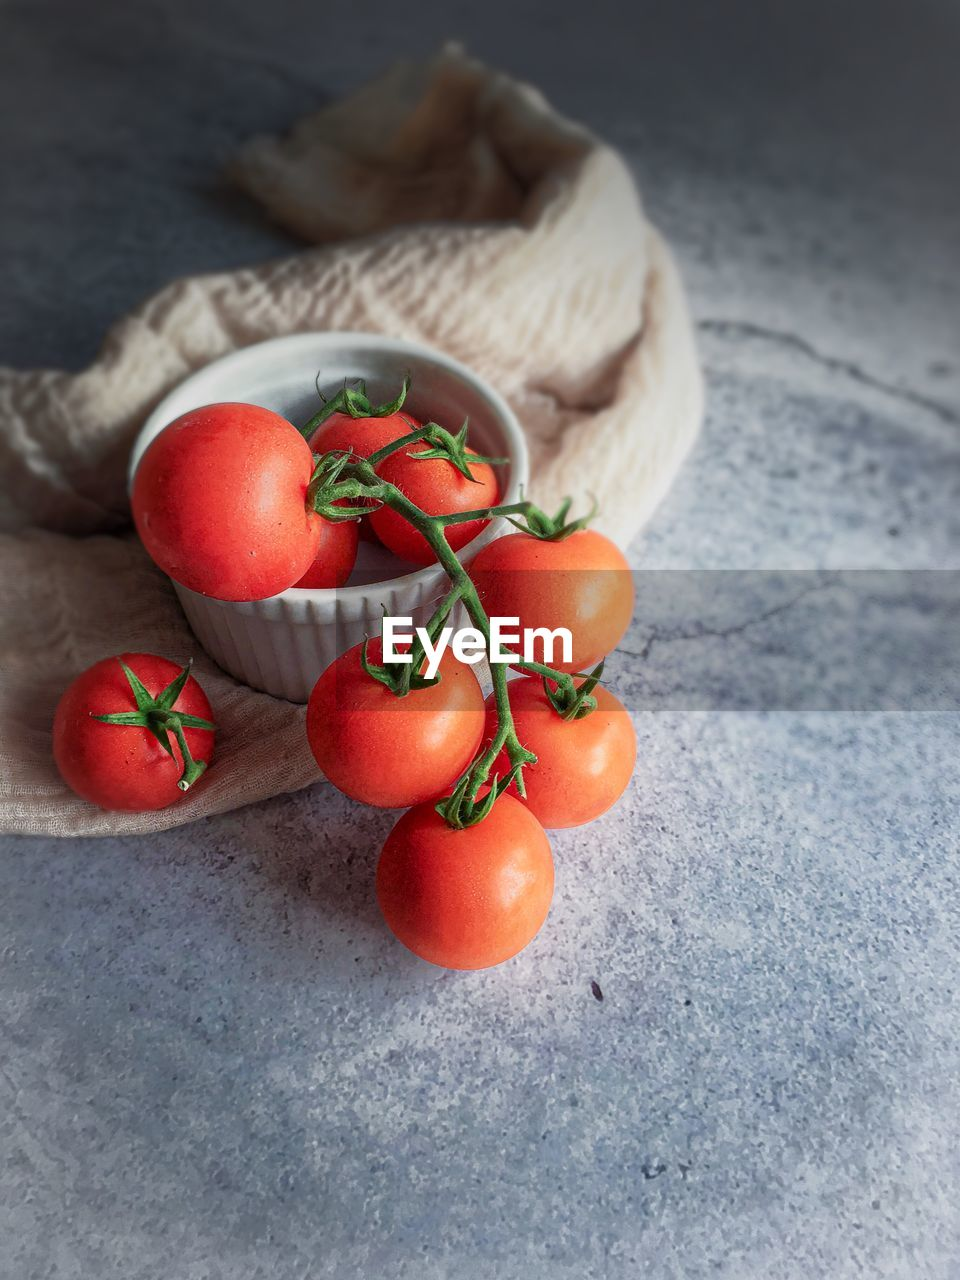 healthy eating, food and drink, food, wellbeing, fruit, freshness, red, tomato, vegetable, still life, close-up, indoors, no people, high angle view, table, raw food, focus on foreground, ripe, cherry tomato, selective focus